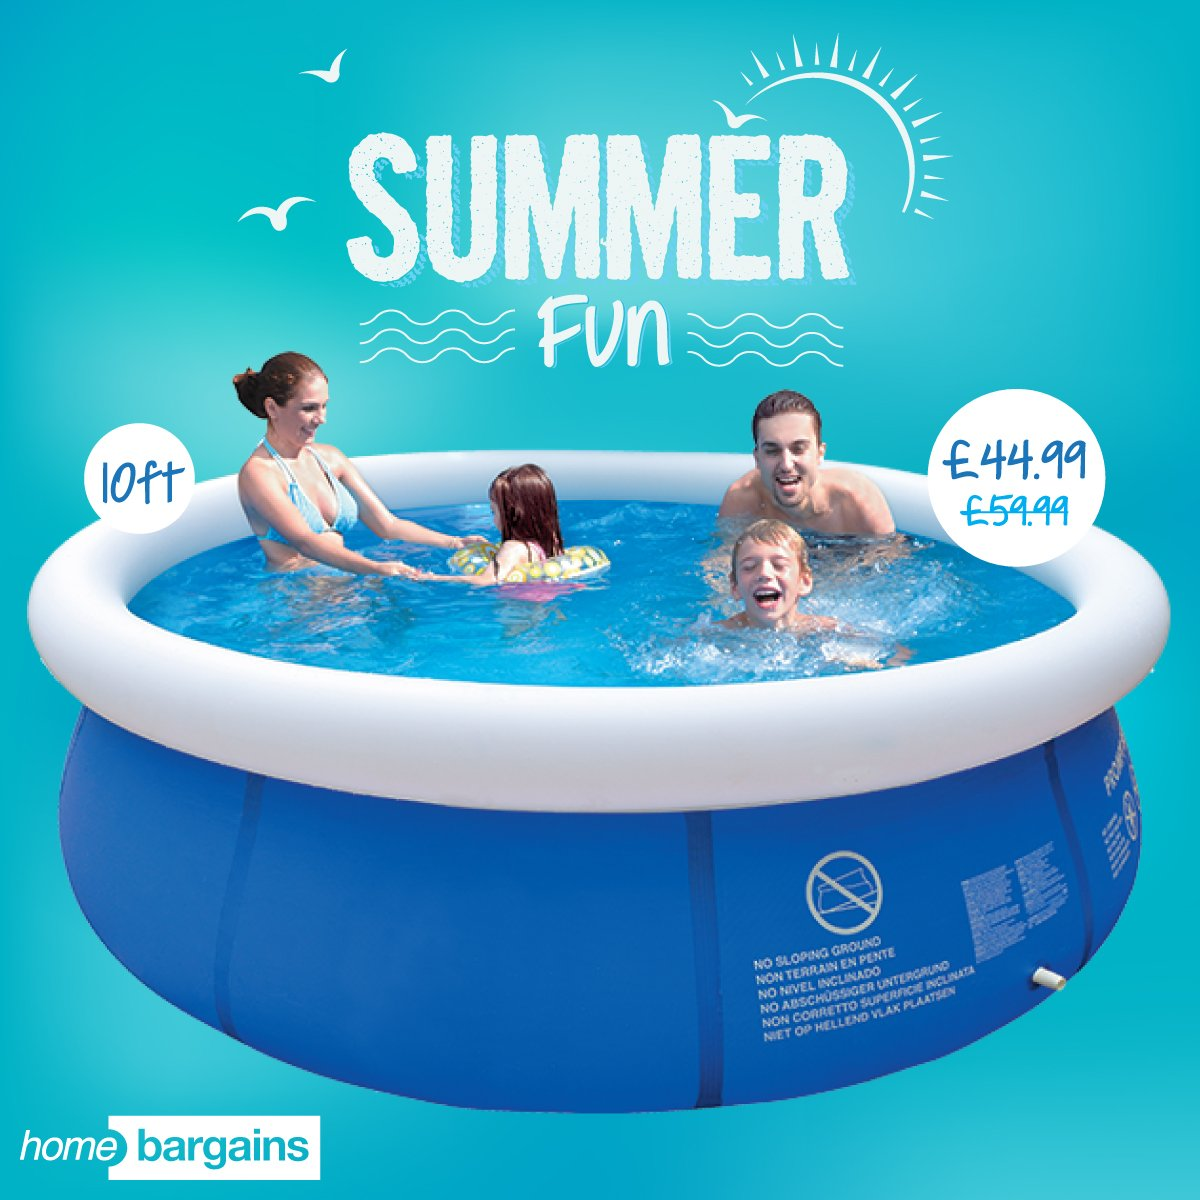 Home Bargains On Twitter The Ultimate Summer Accessory For Your Garden Has Arrived Cool Off In Style With This 10ft Inflatable Pool Https T Co Pavn2bmnph Https T Co 3btpzubsym